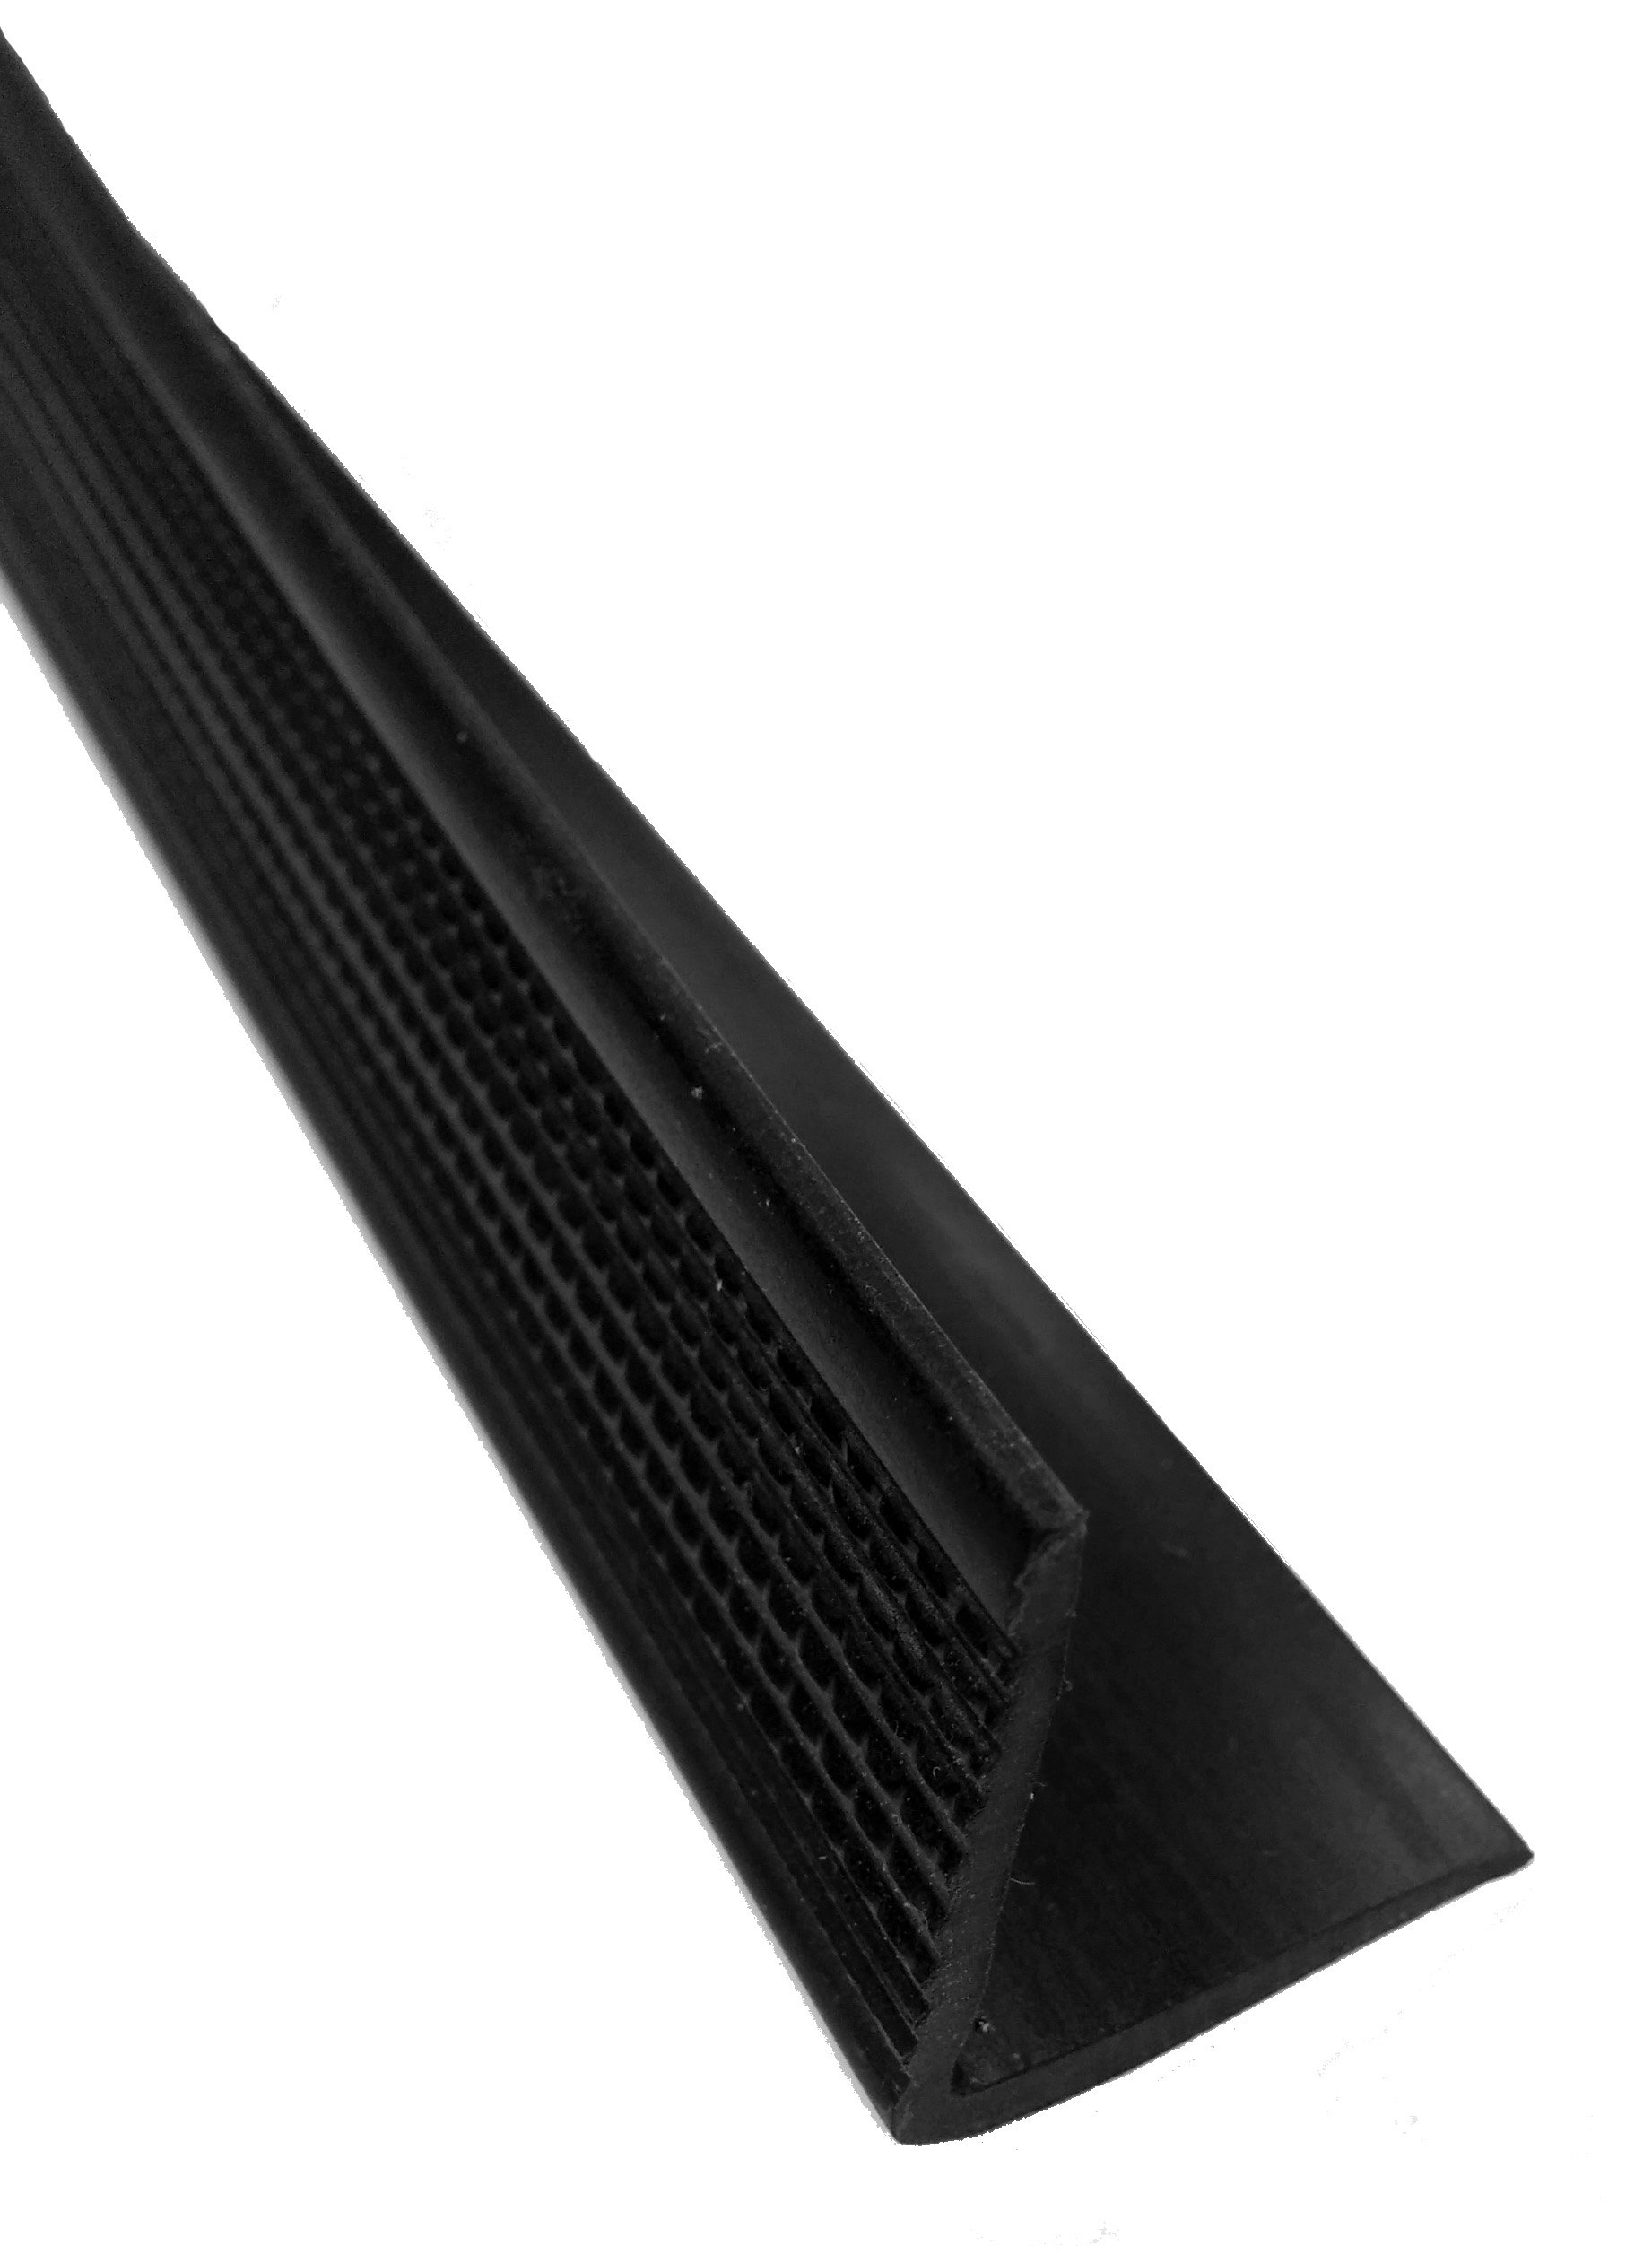 Herco 510 Thermoplastic Angle Extrusion 6 ft x 1-1/8 in x 1-1/4 in (Black)